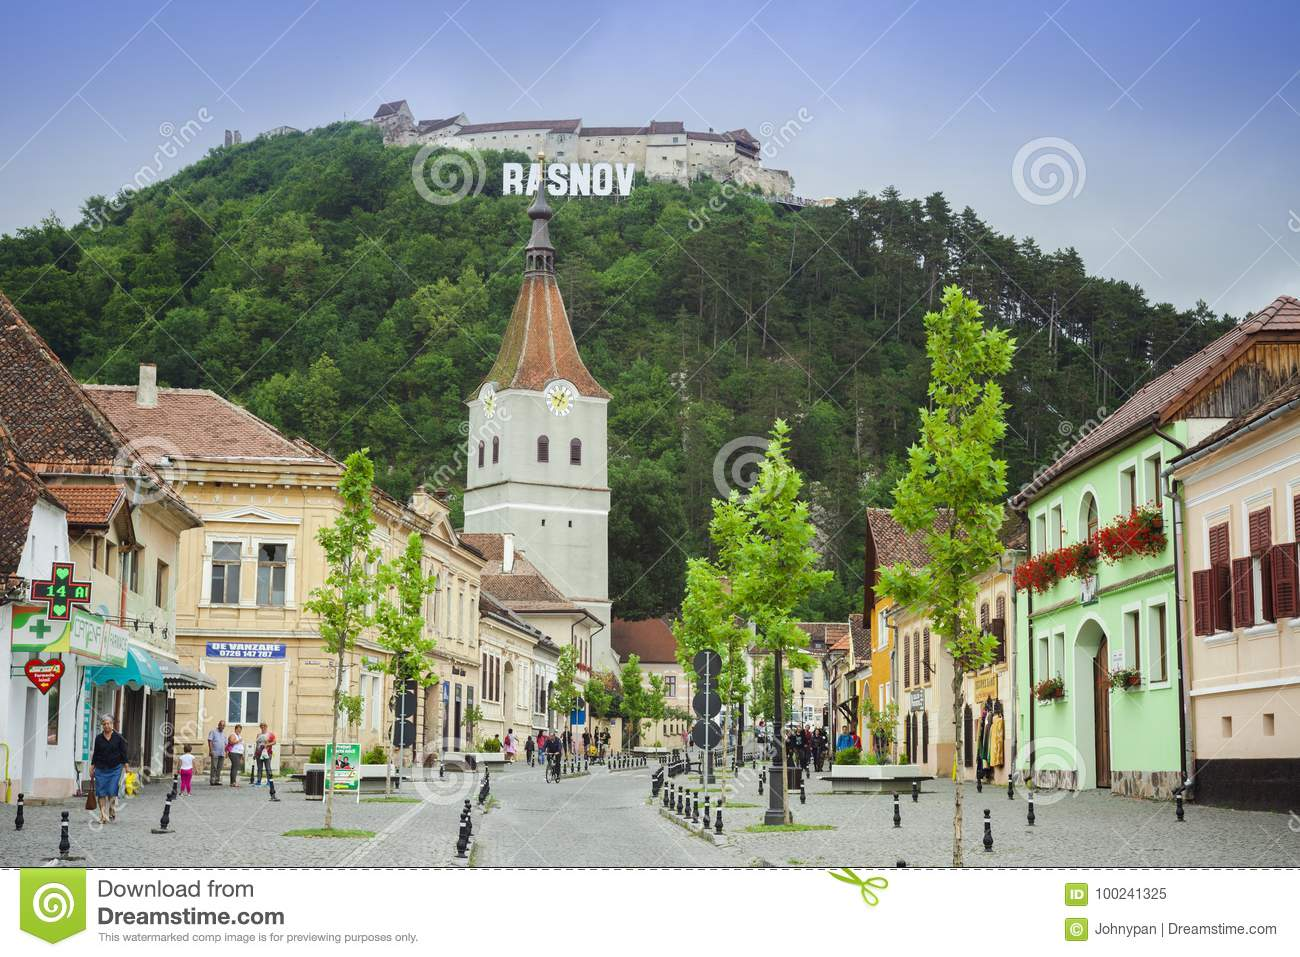 Rasnov old city and fortress on the hill in Romania